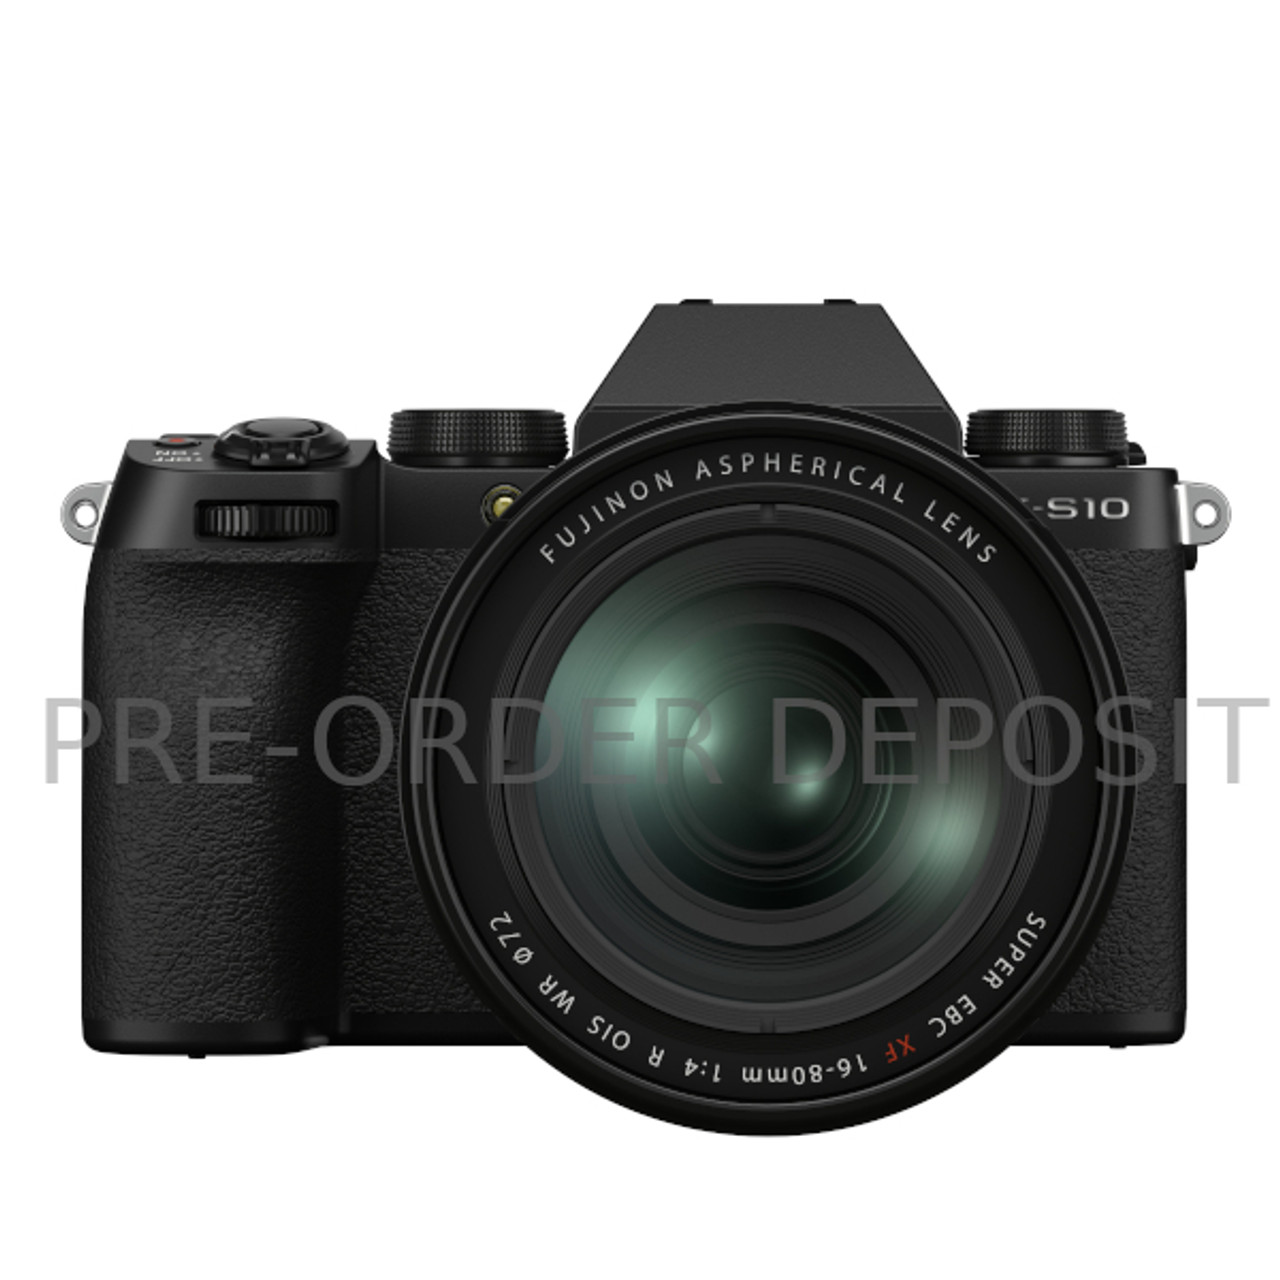 Pre-Order Deposit for Fujifilm X-S10 with XF16-80mm F4 R OIS WR